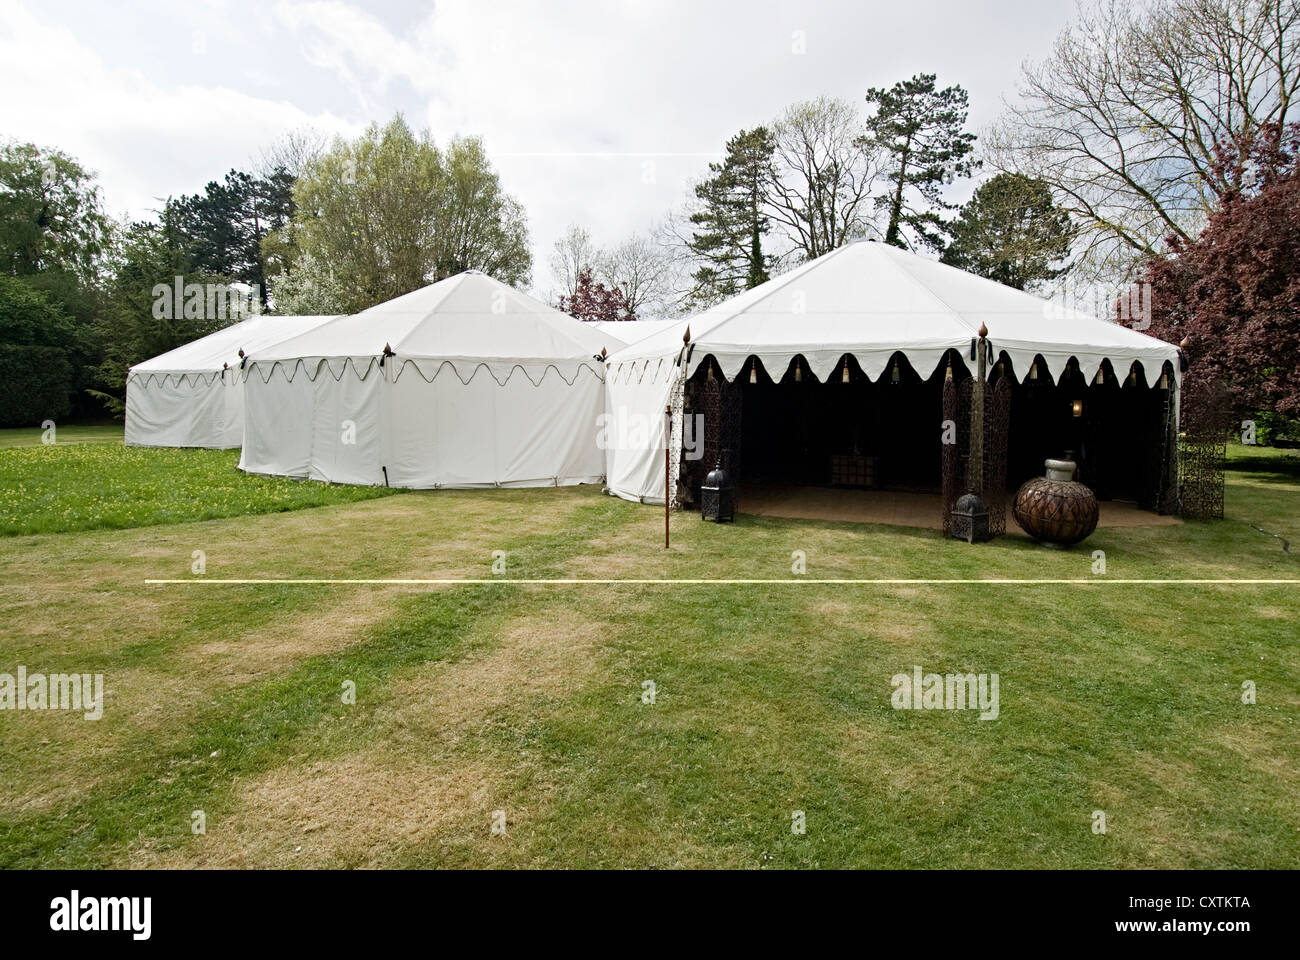 bedouin party tent for use in the uk - Stock Image & Bedouin People Tents Stock Photos u0026 Bedouin People Tents Stock ...